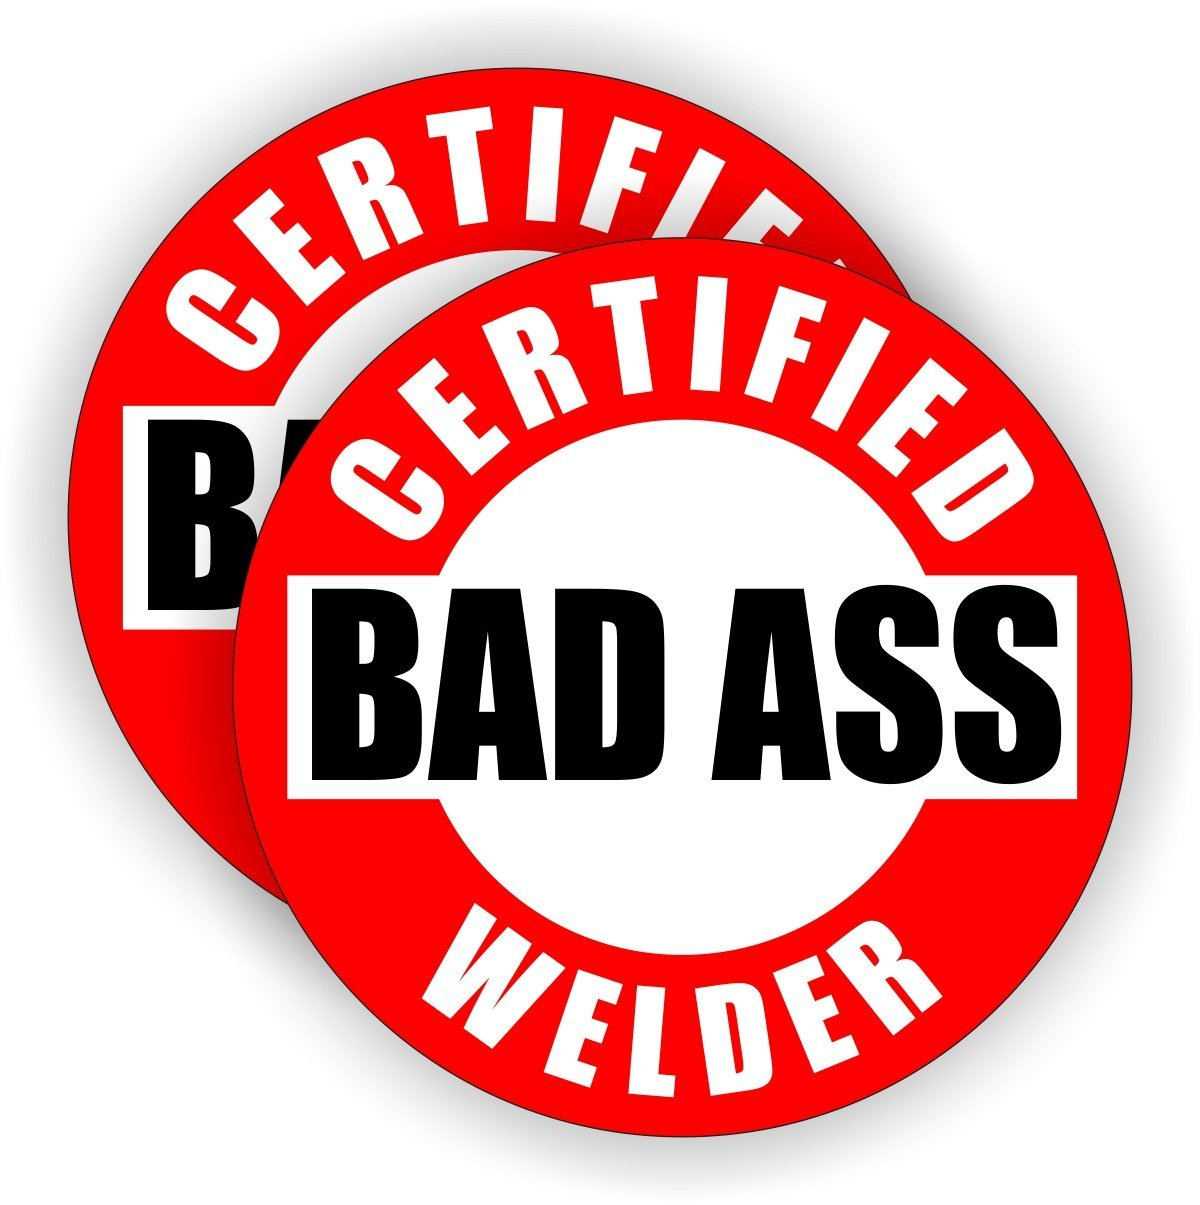 (Pair) Bad Ass Welder Hard Hat Stickers | Motorcycle Welding Helmet Decals | Labels Lunch Toolbox Mig Tig Metal Aluminum Stick